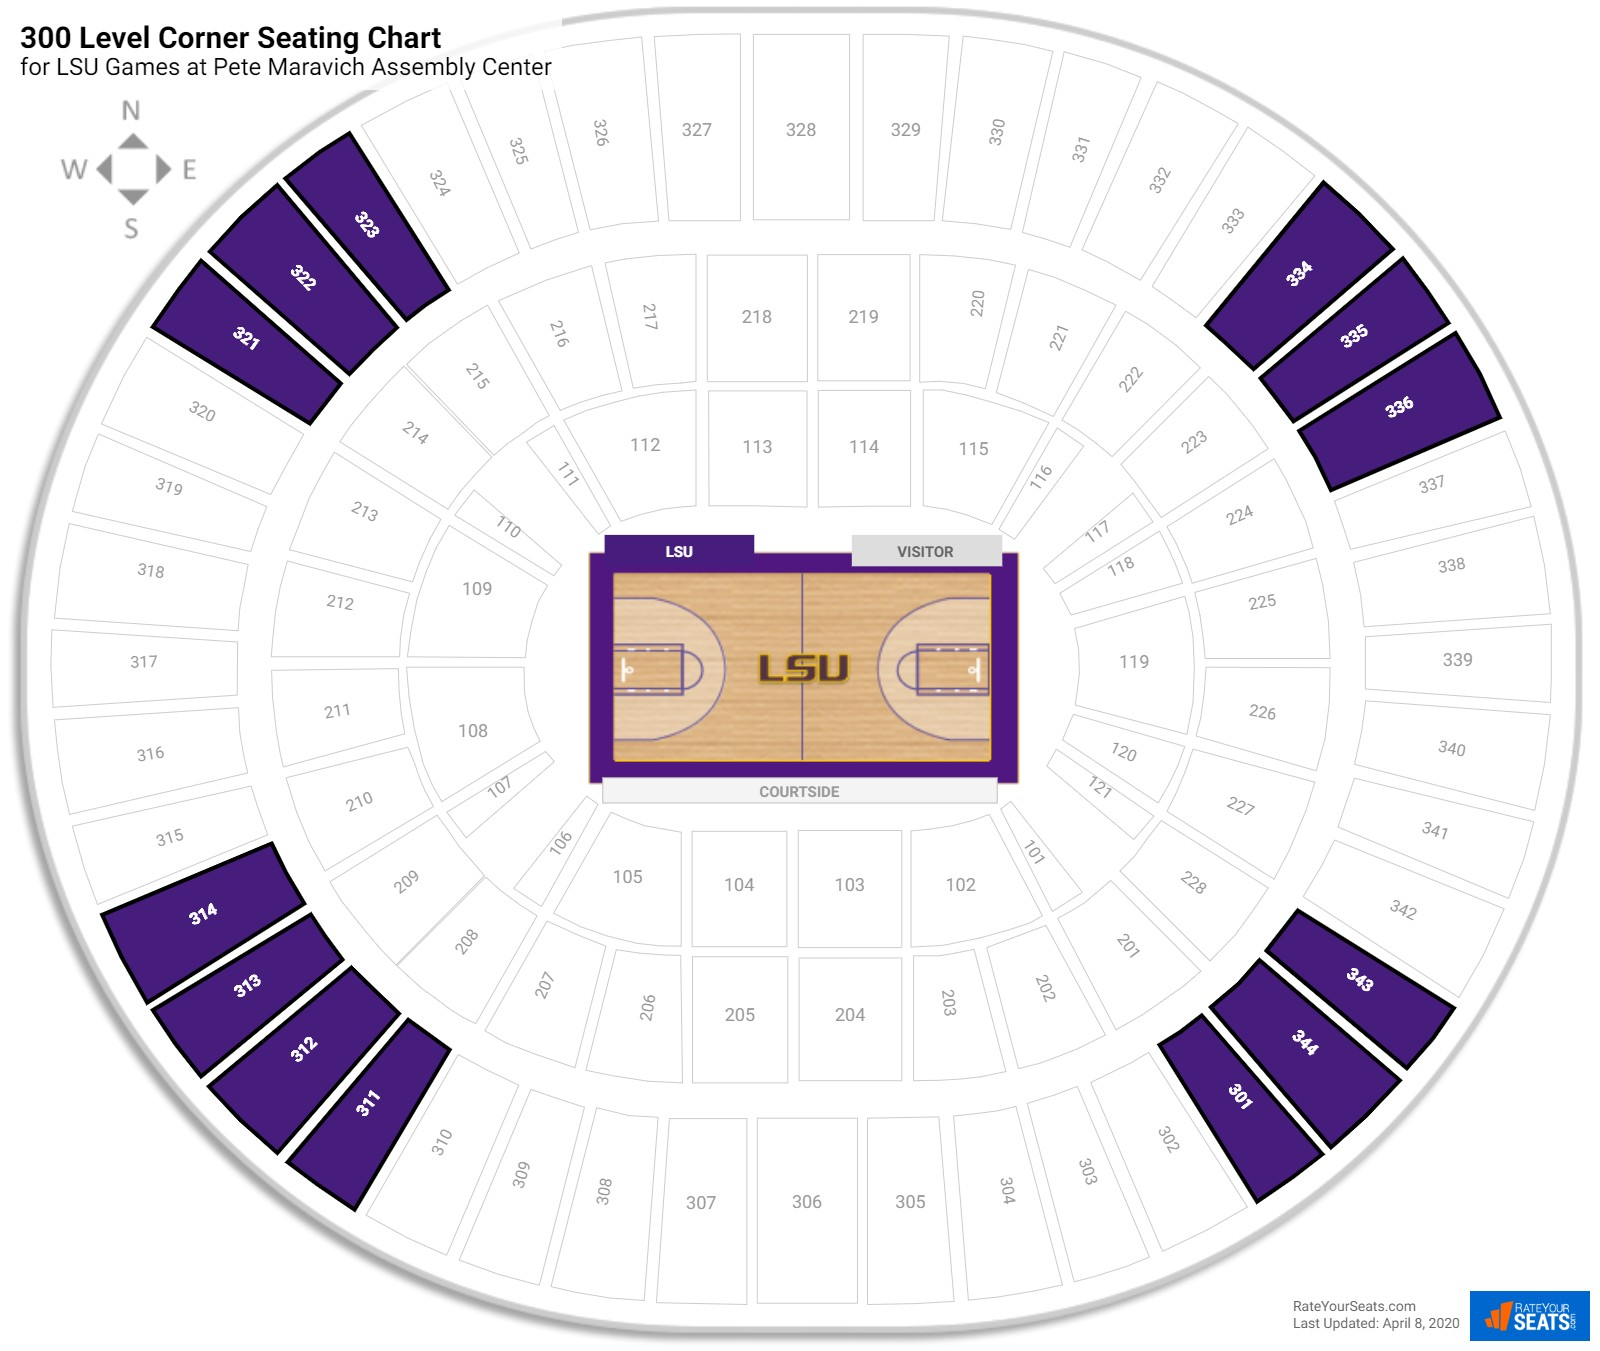 Pete Maravich Assembly Center 300 Level Corner seating chart